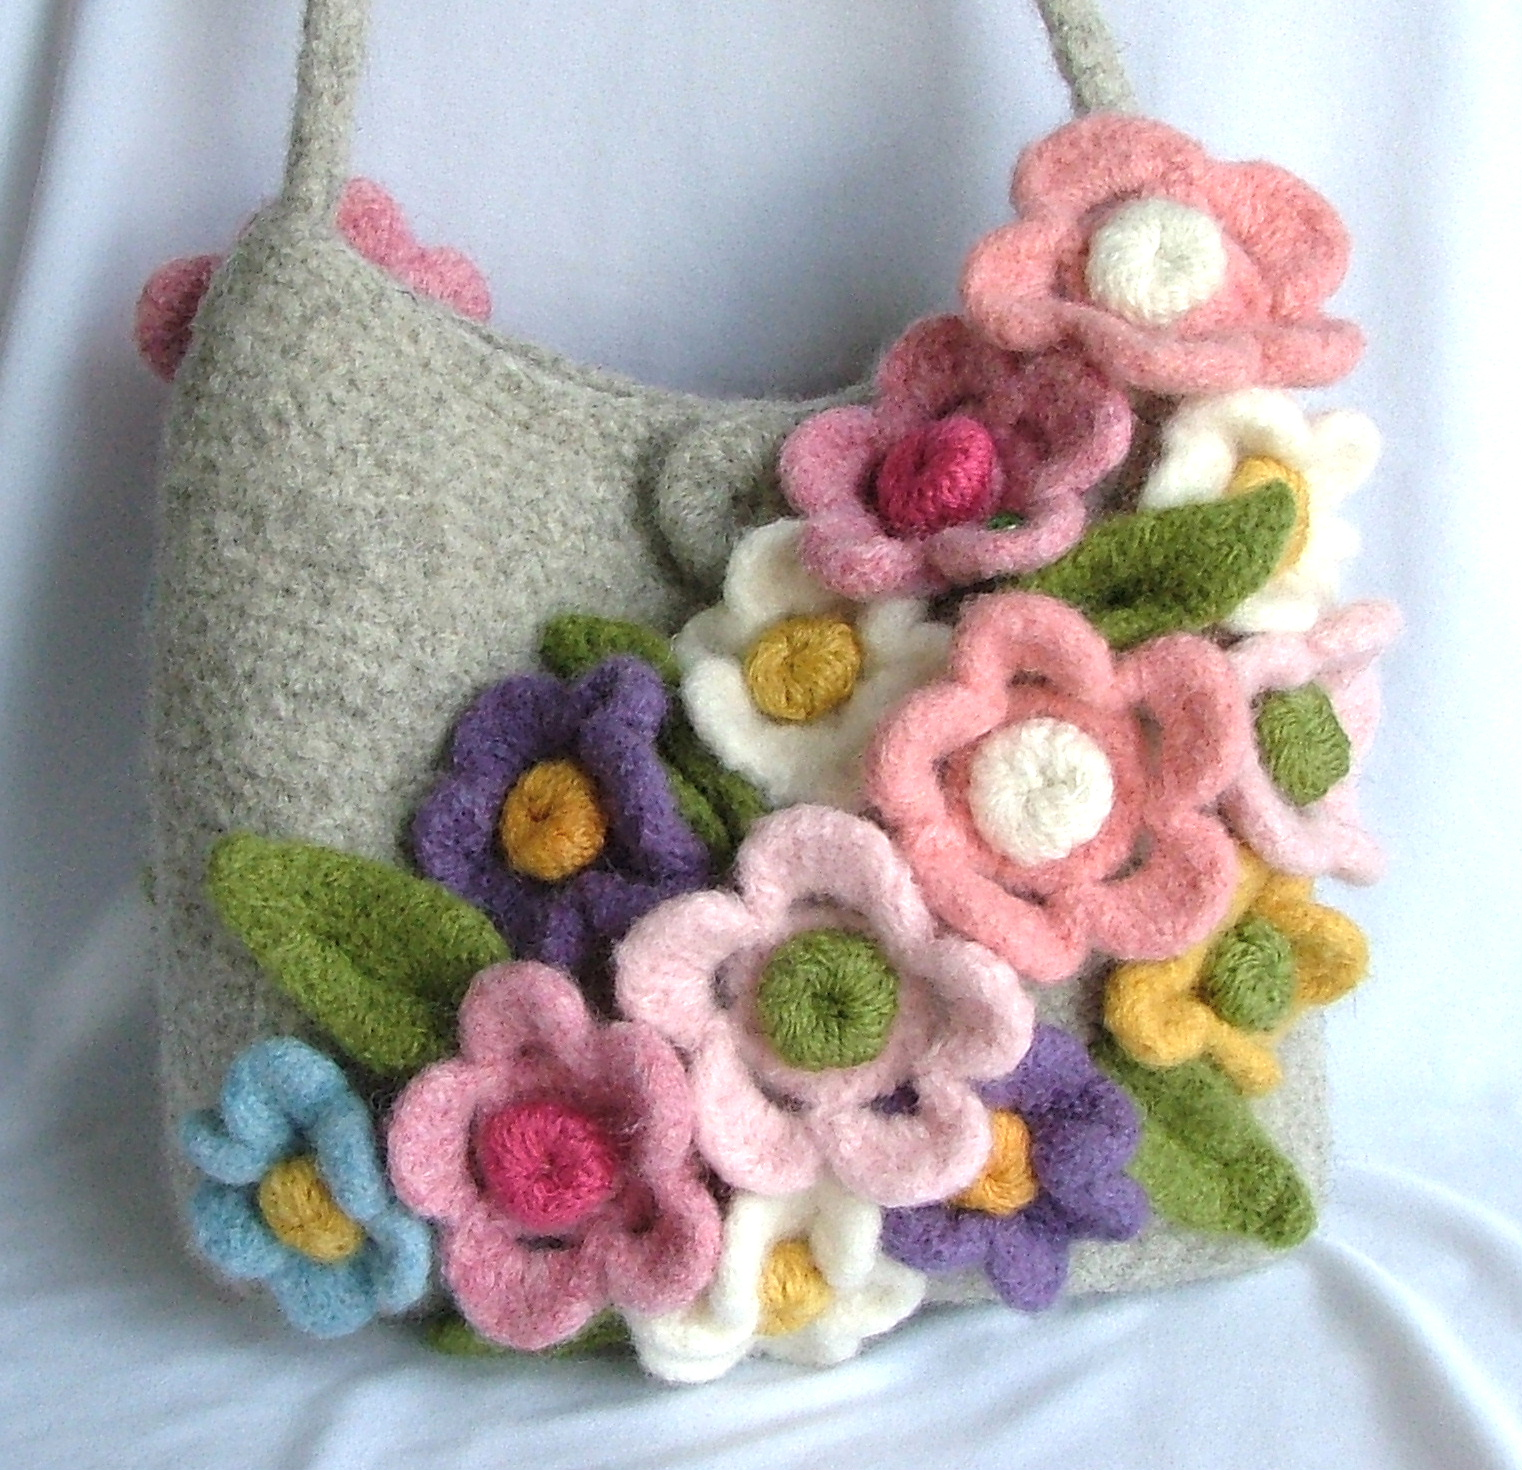 Woolen Crochet Purse : Felted Crochet Bag Pattern - Your Own Purse Making Guide